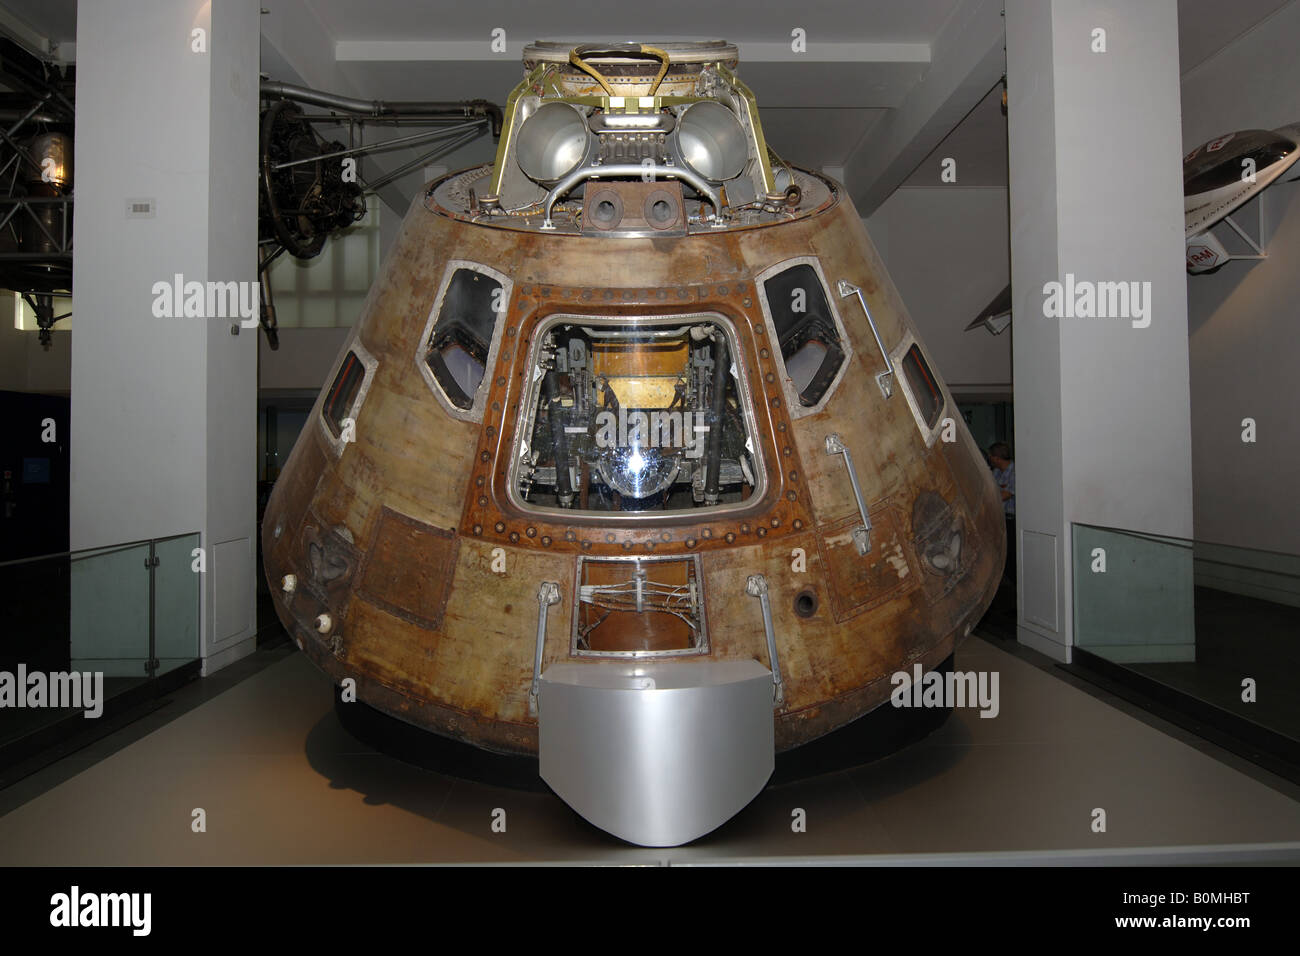 The Apollo 11 Space capsule on display in the Science ...